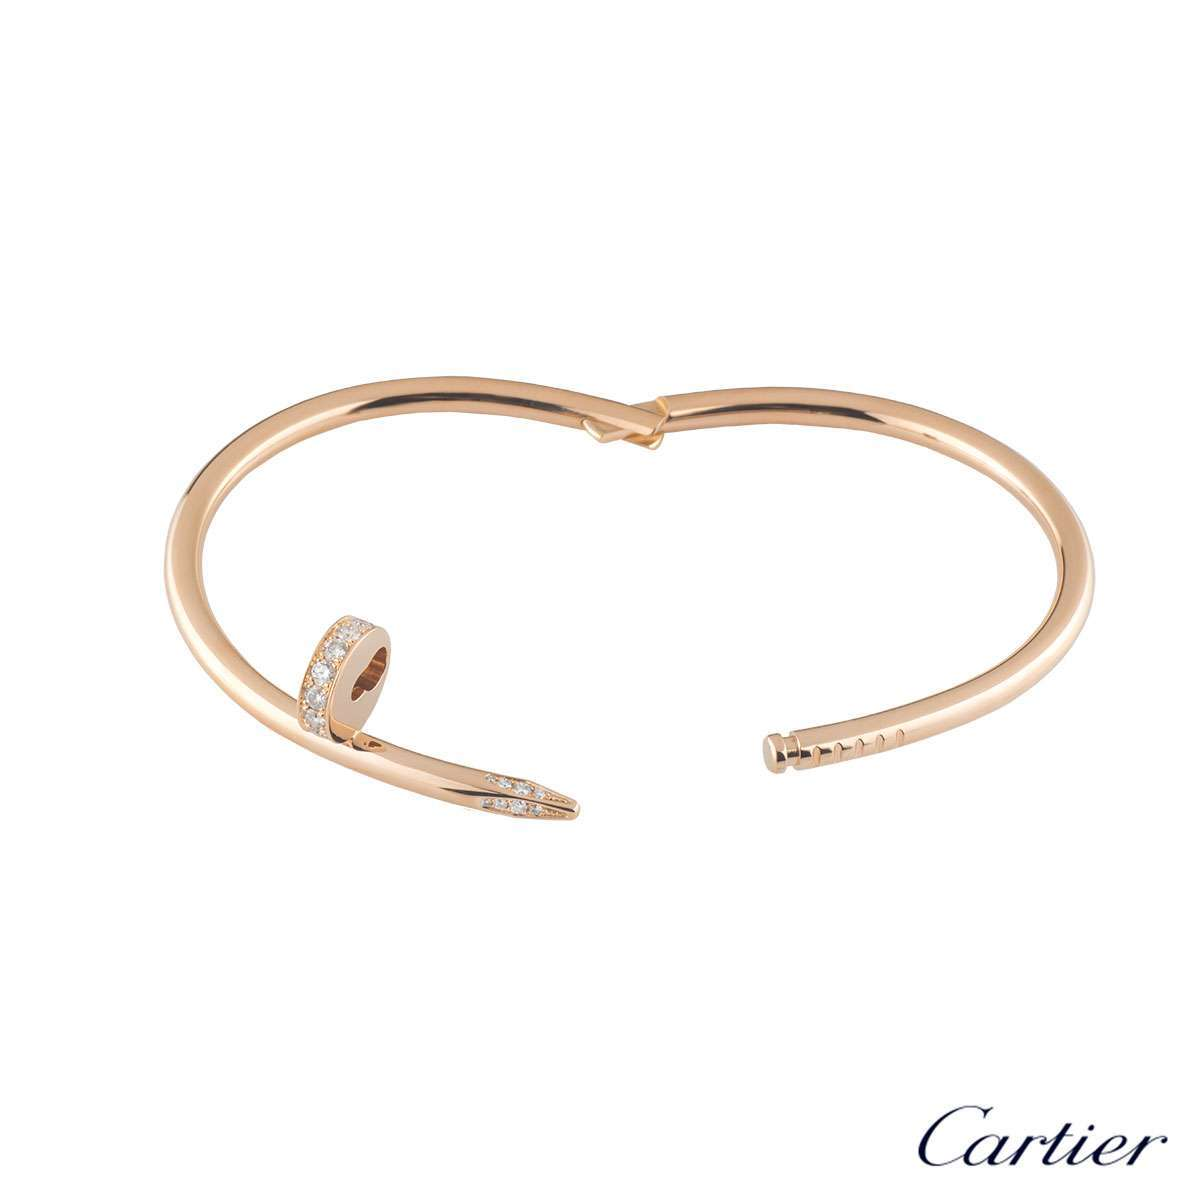 Cartier Rose Gold Diamond Juste Un Clou Bracelet Size 16 B6039016